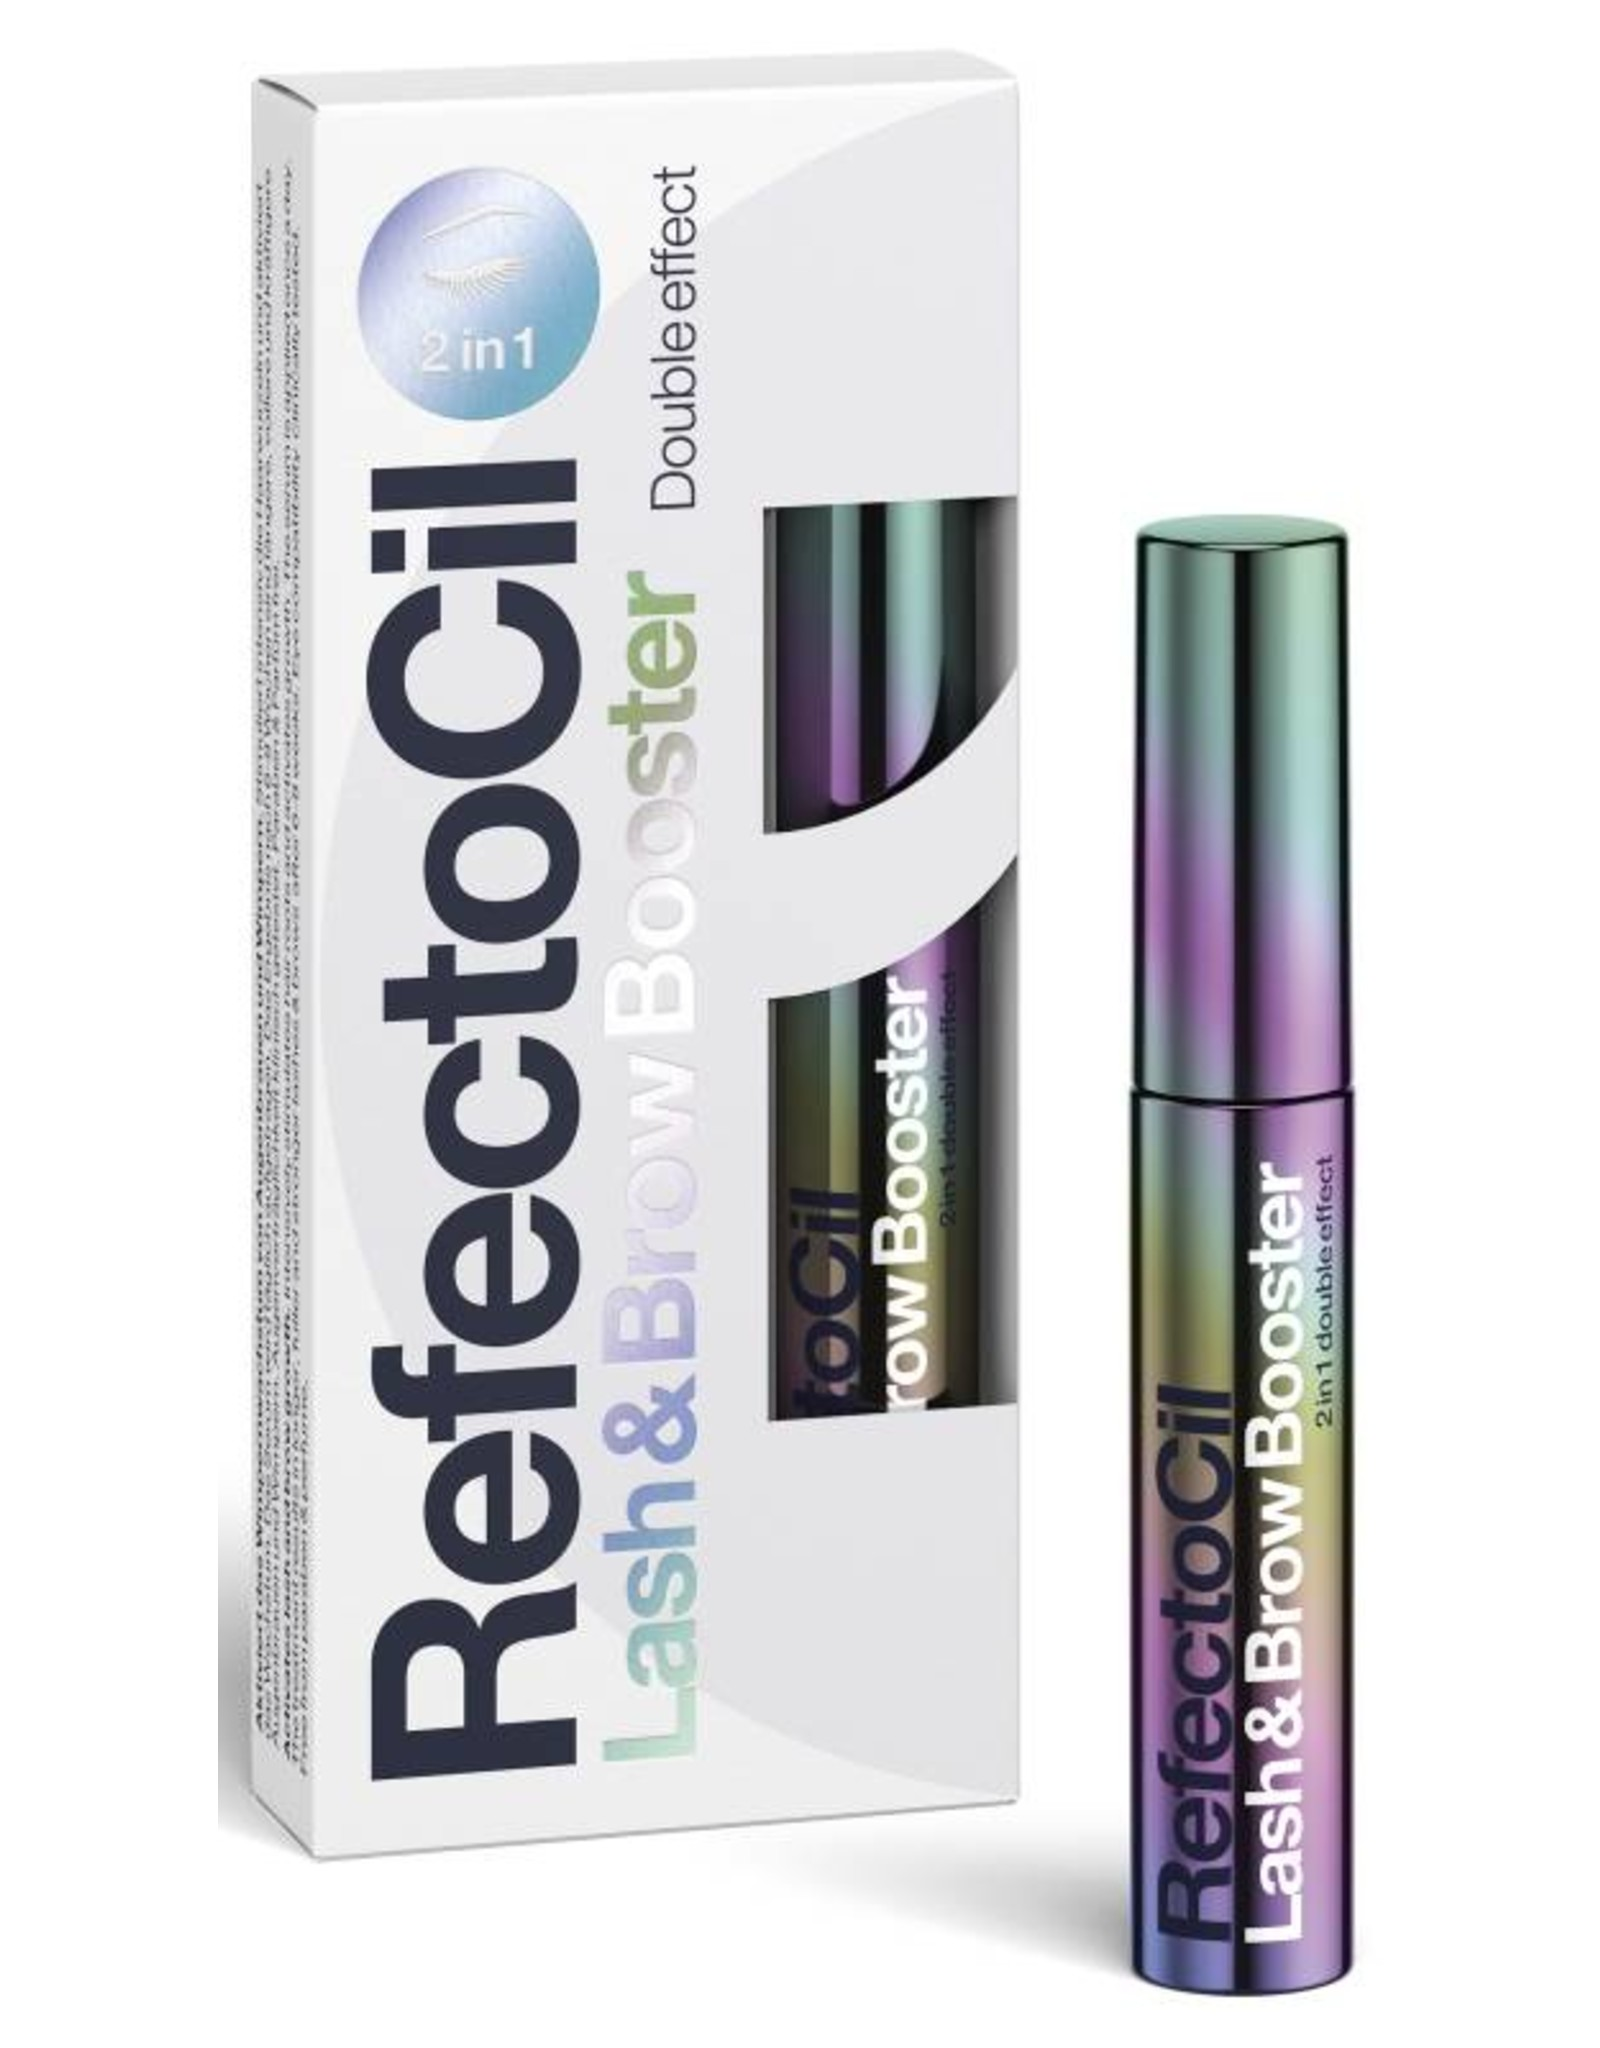 Refectocil Refectocil Lash & Brow Booster 2 in 1